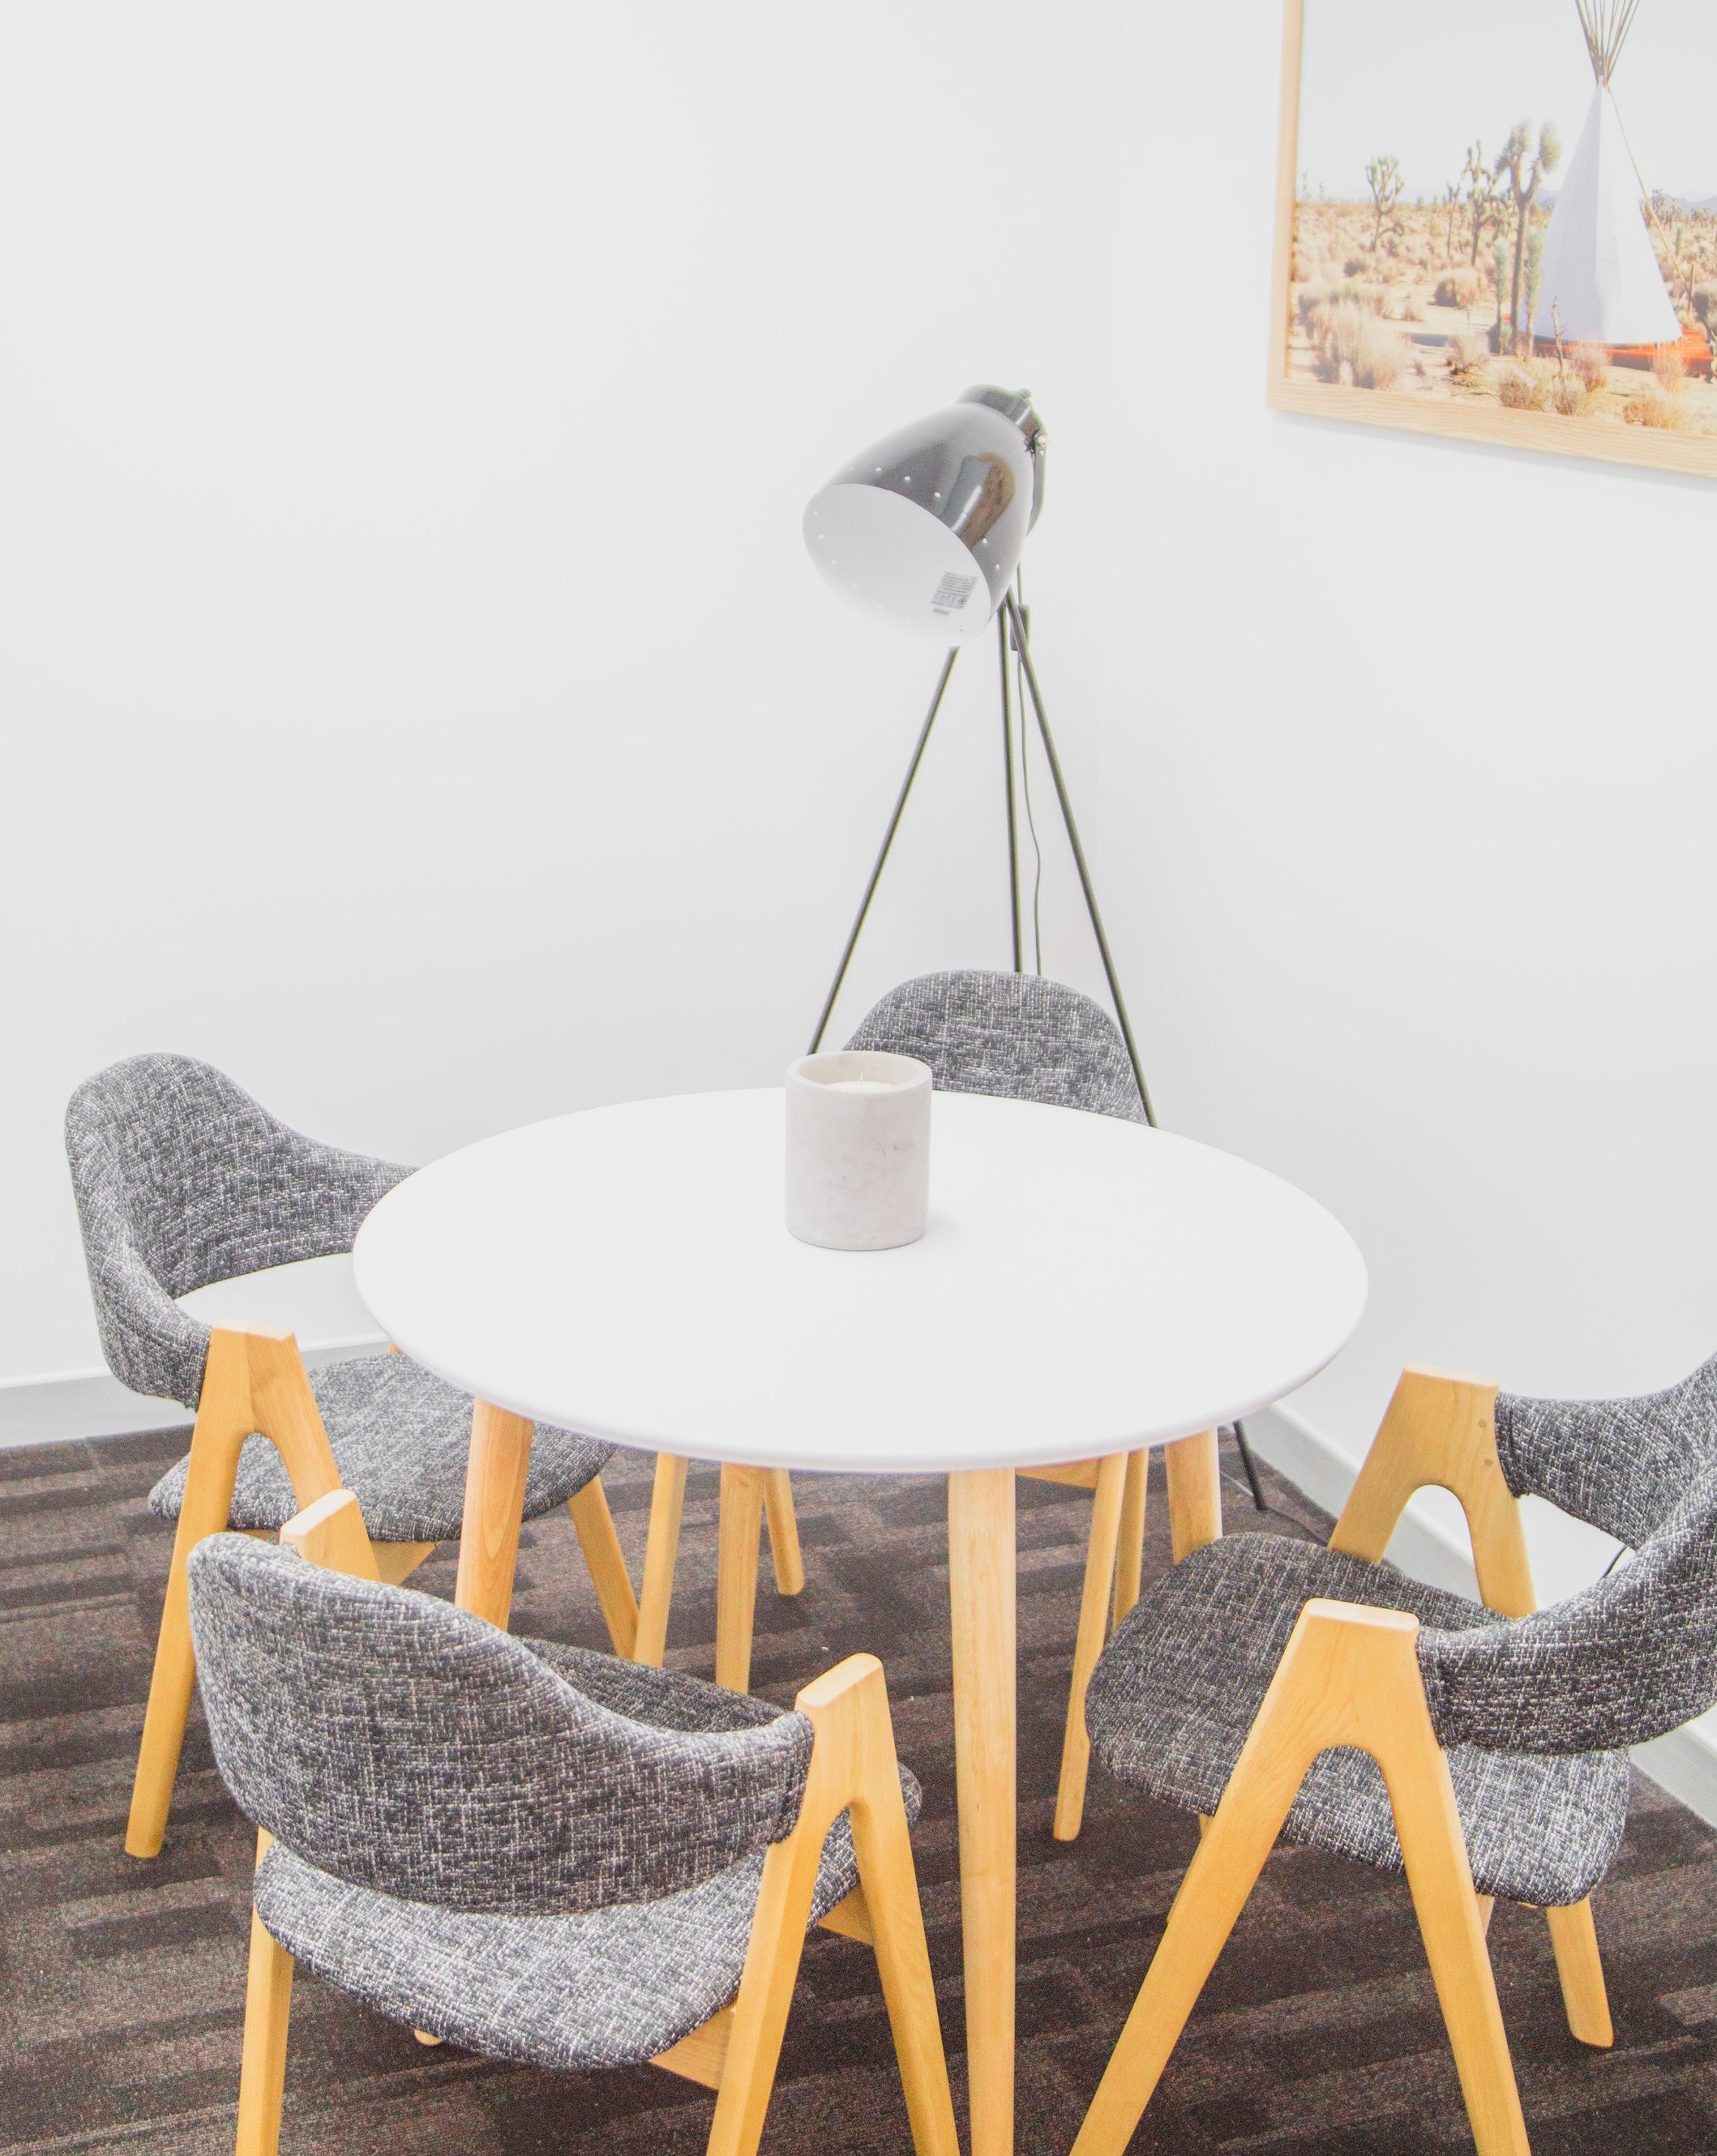 Intimate Meeting - $30/hourRound table with 4 chairs